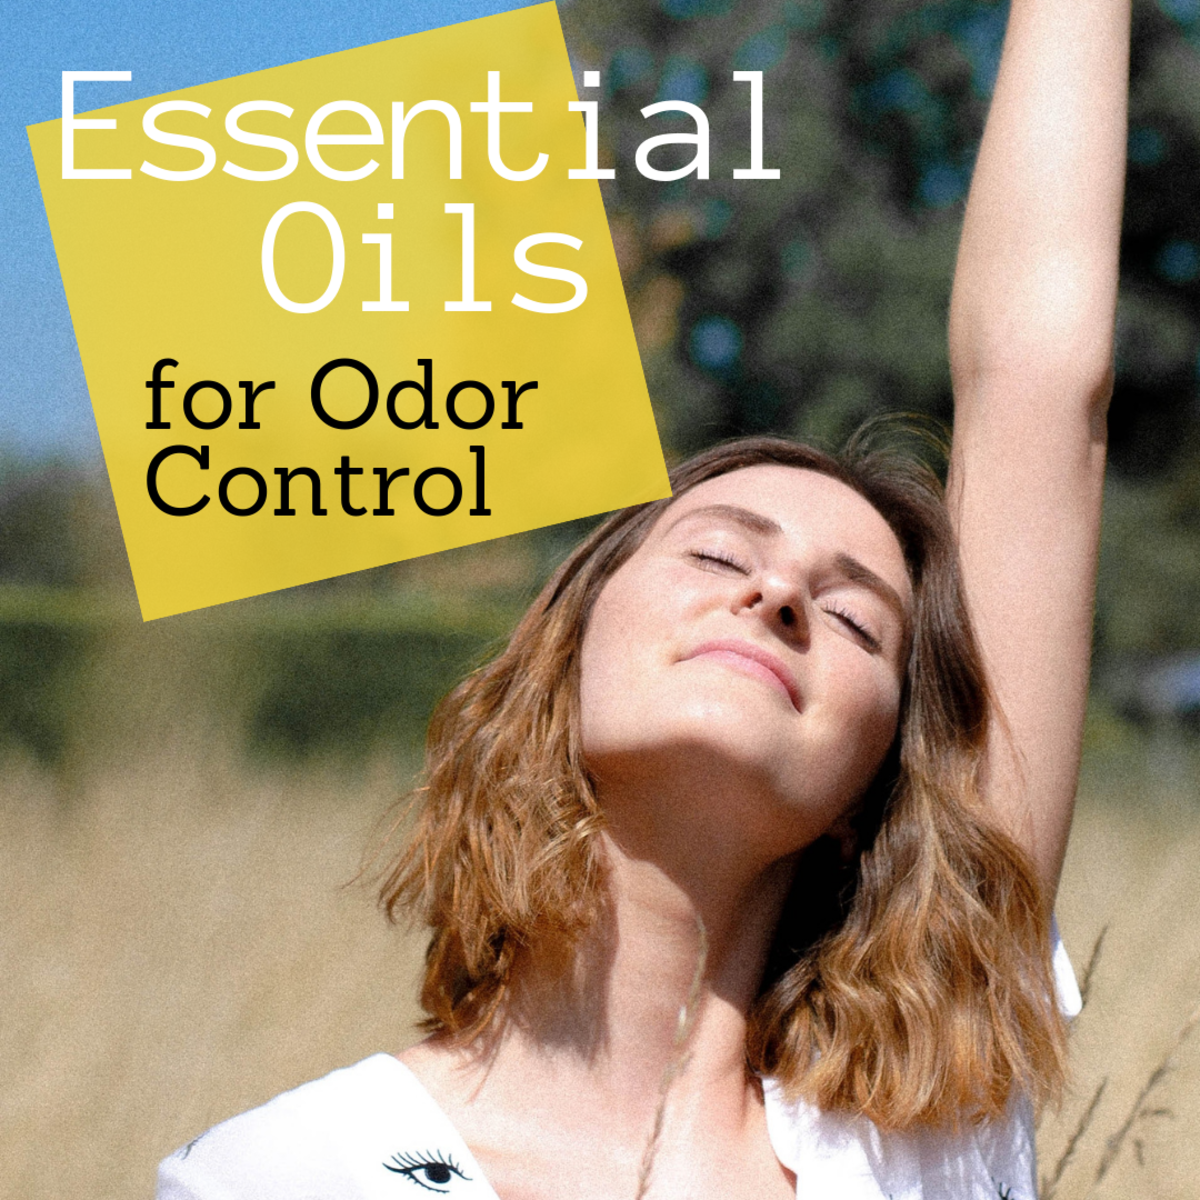 Goodbye Smelly Underarms! Best Essential Oils for Body Odor